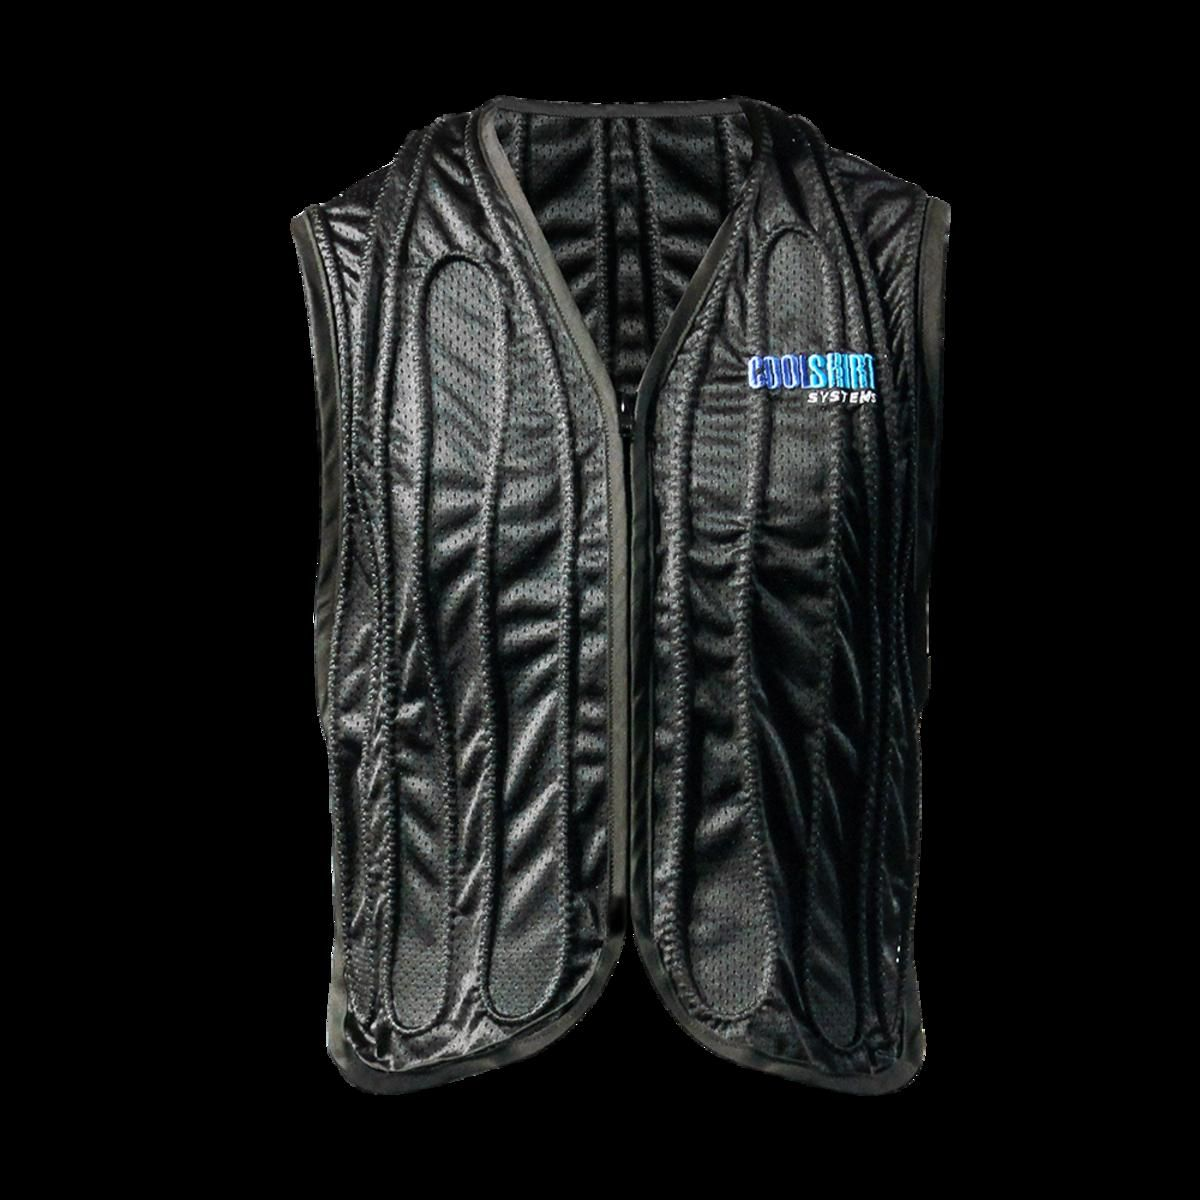 Cool Shirt Systems >> Cool Shirt Systems Active Aqua Vest The Warming Store